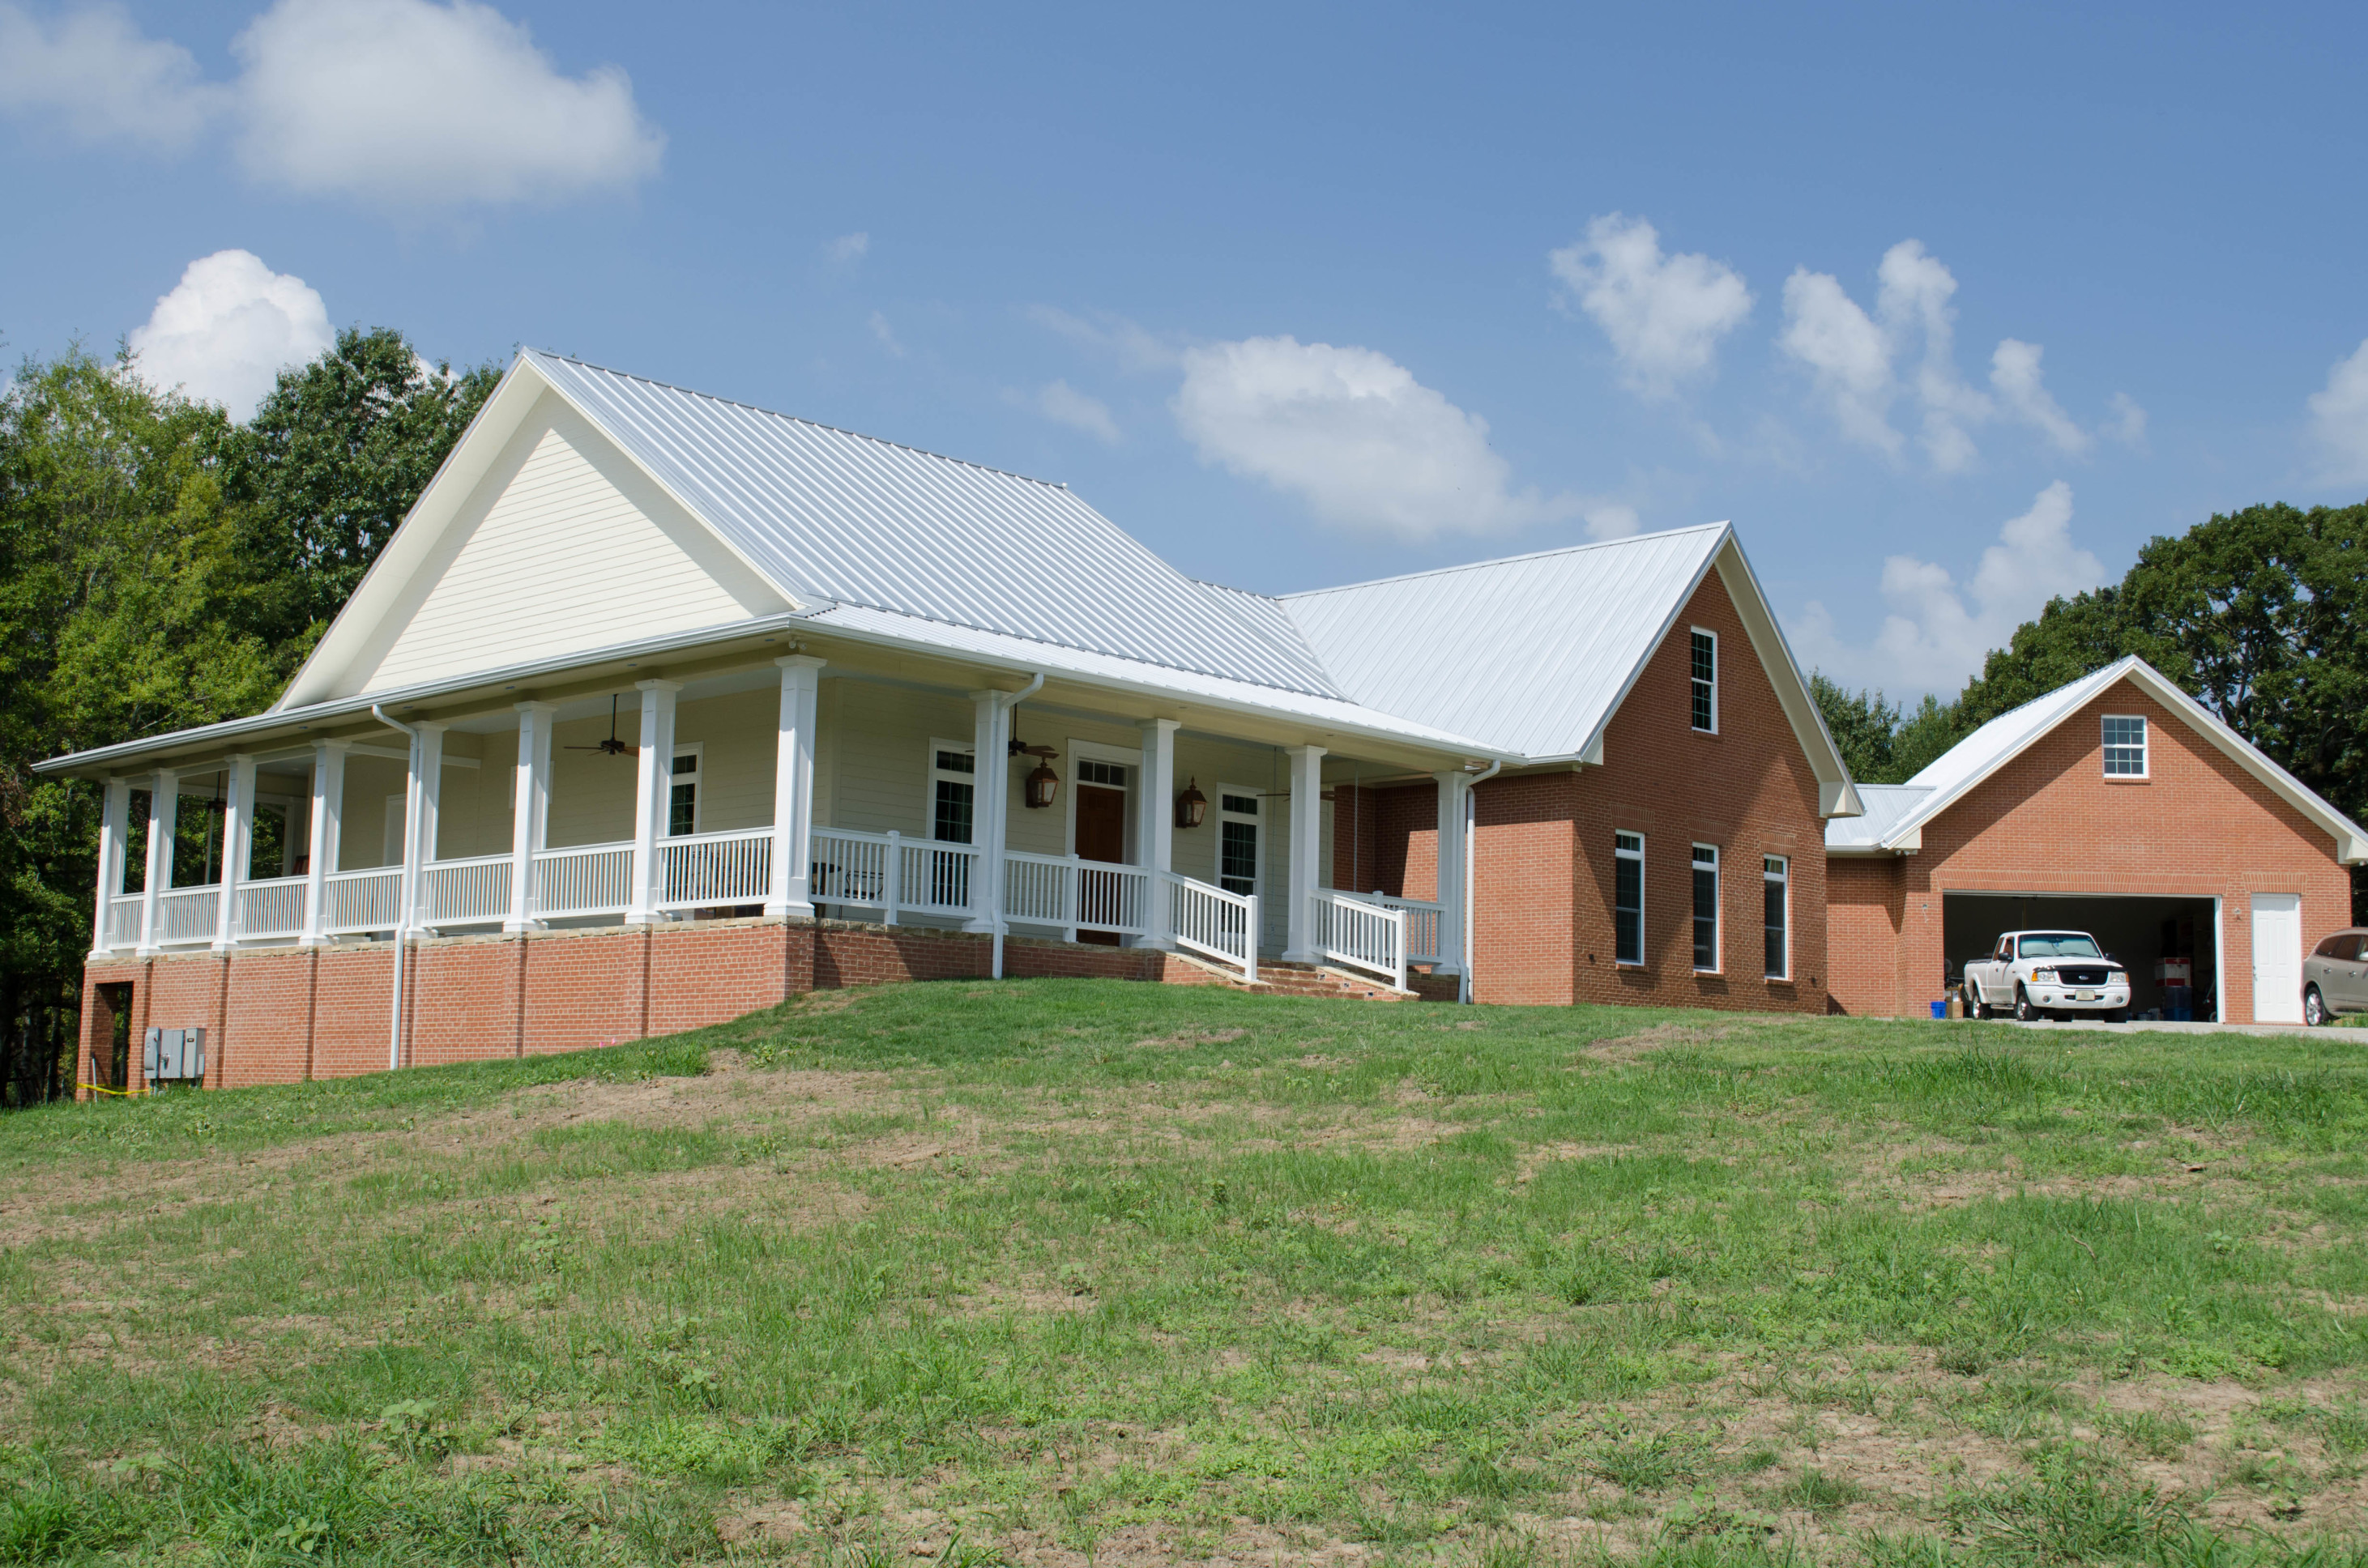 First icf home in yazoo county mississippi built using for Icf home kits